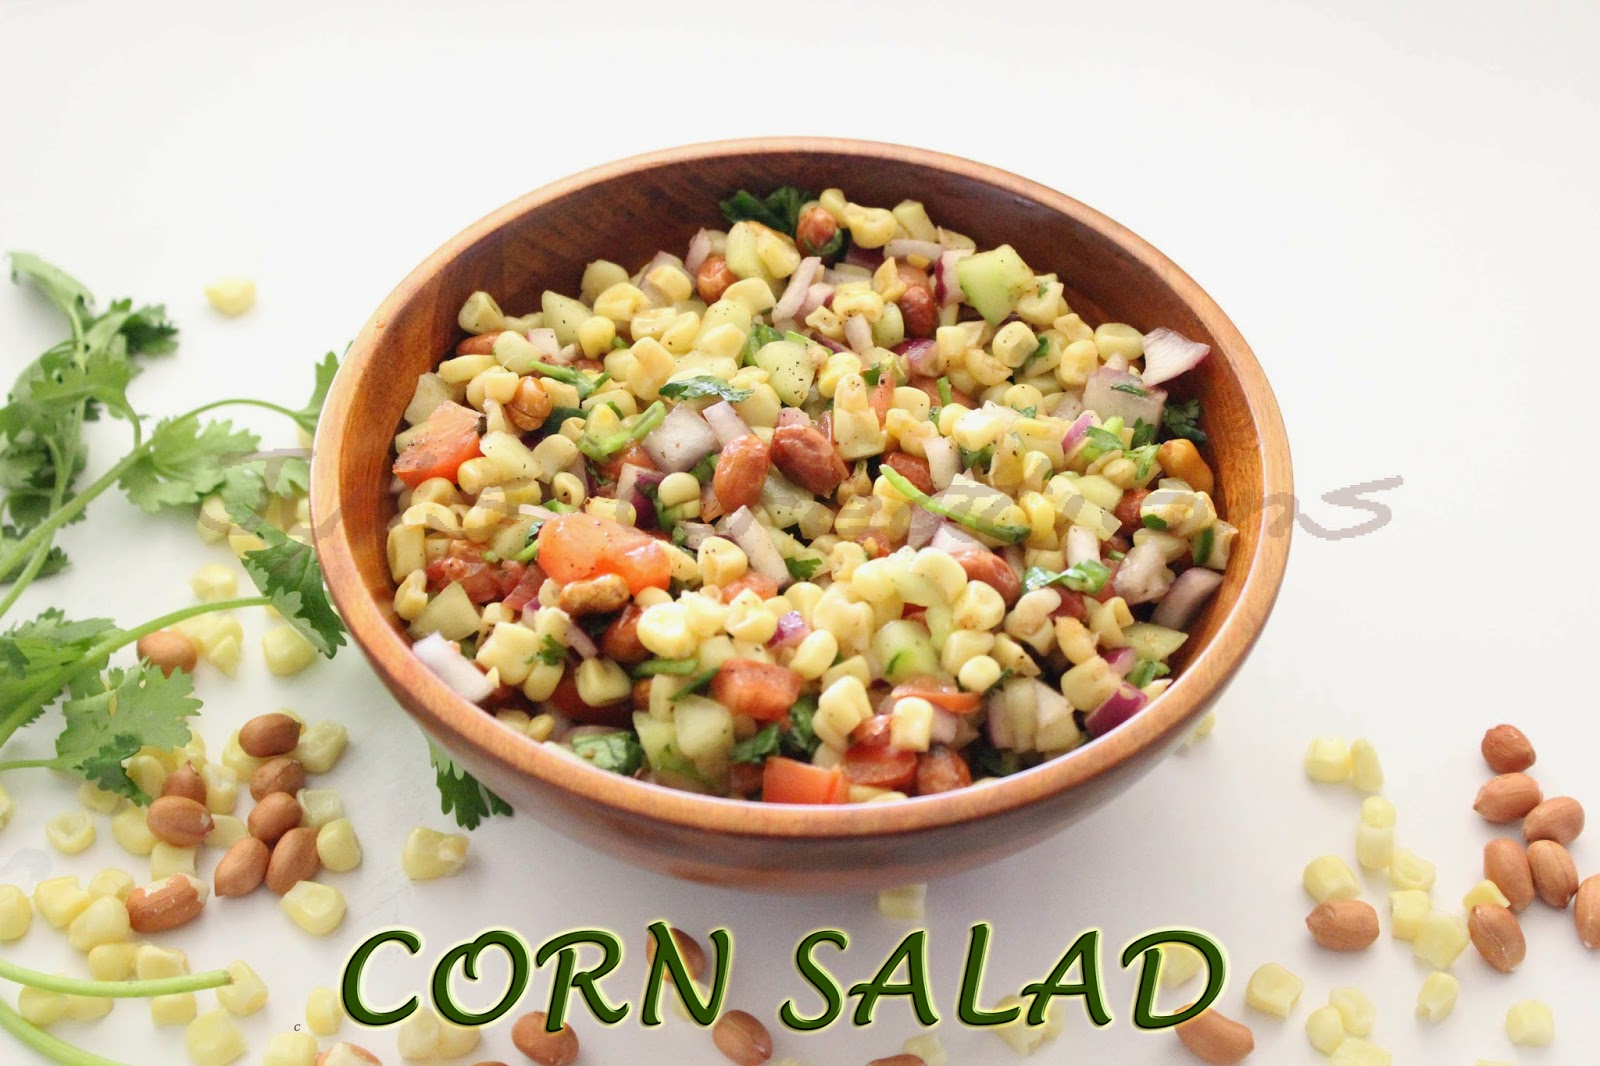 Health tipsbaby foodsbeauty tipshomemade recipes jyls creations corn fresh frozen 1cup peanut 14 cup cucumber finely chopped 14 onion finely chopped 14 tomato finely chopped 1 forumfinder Gallery